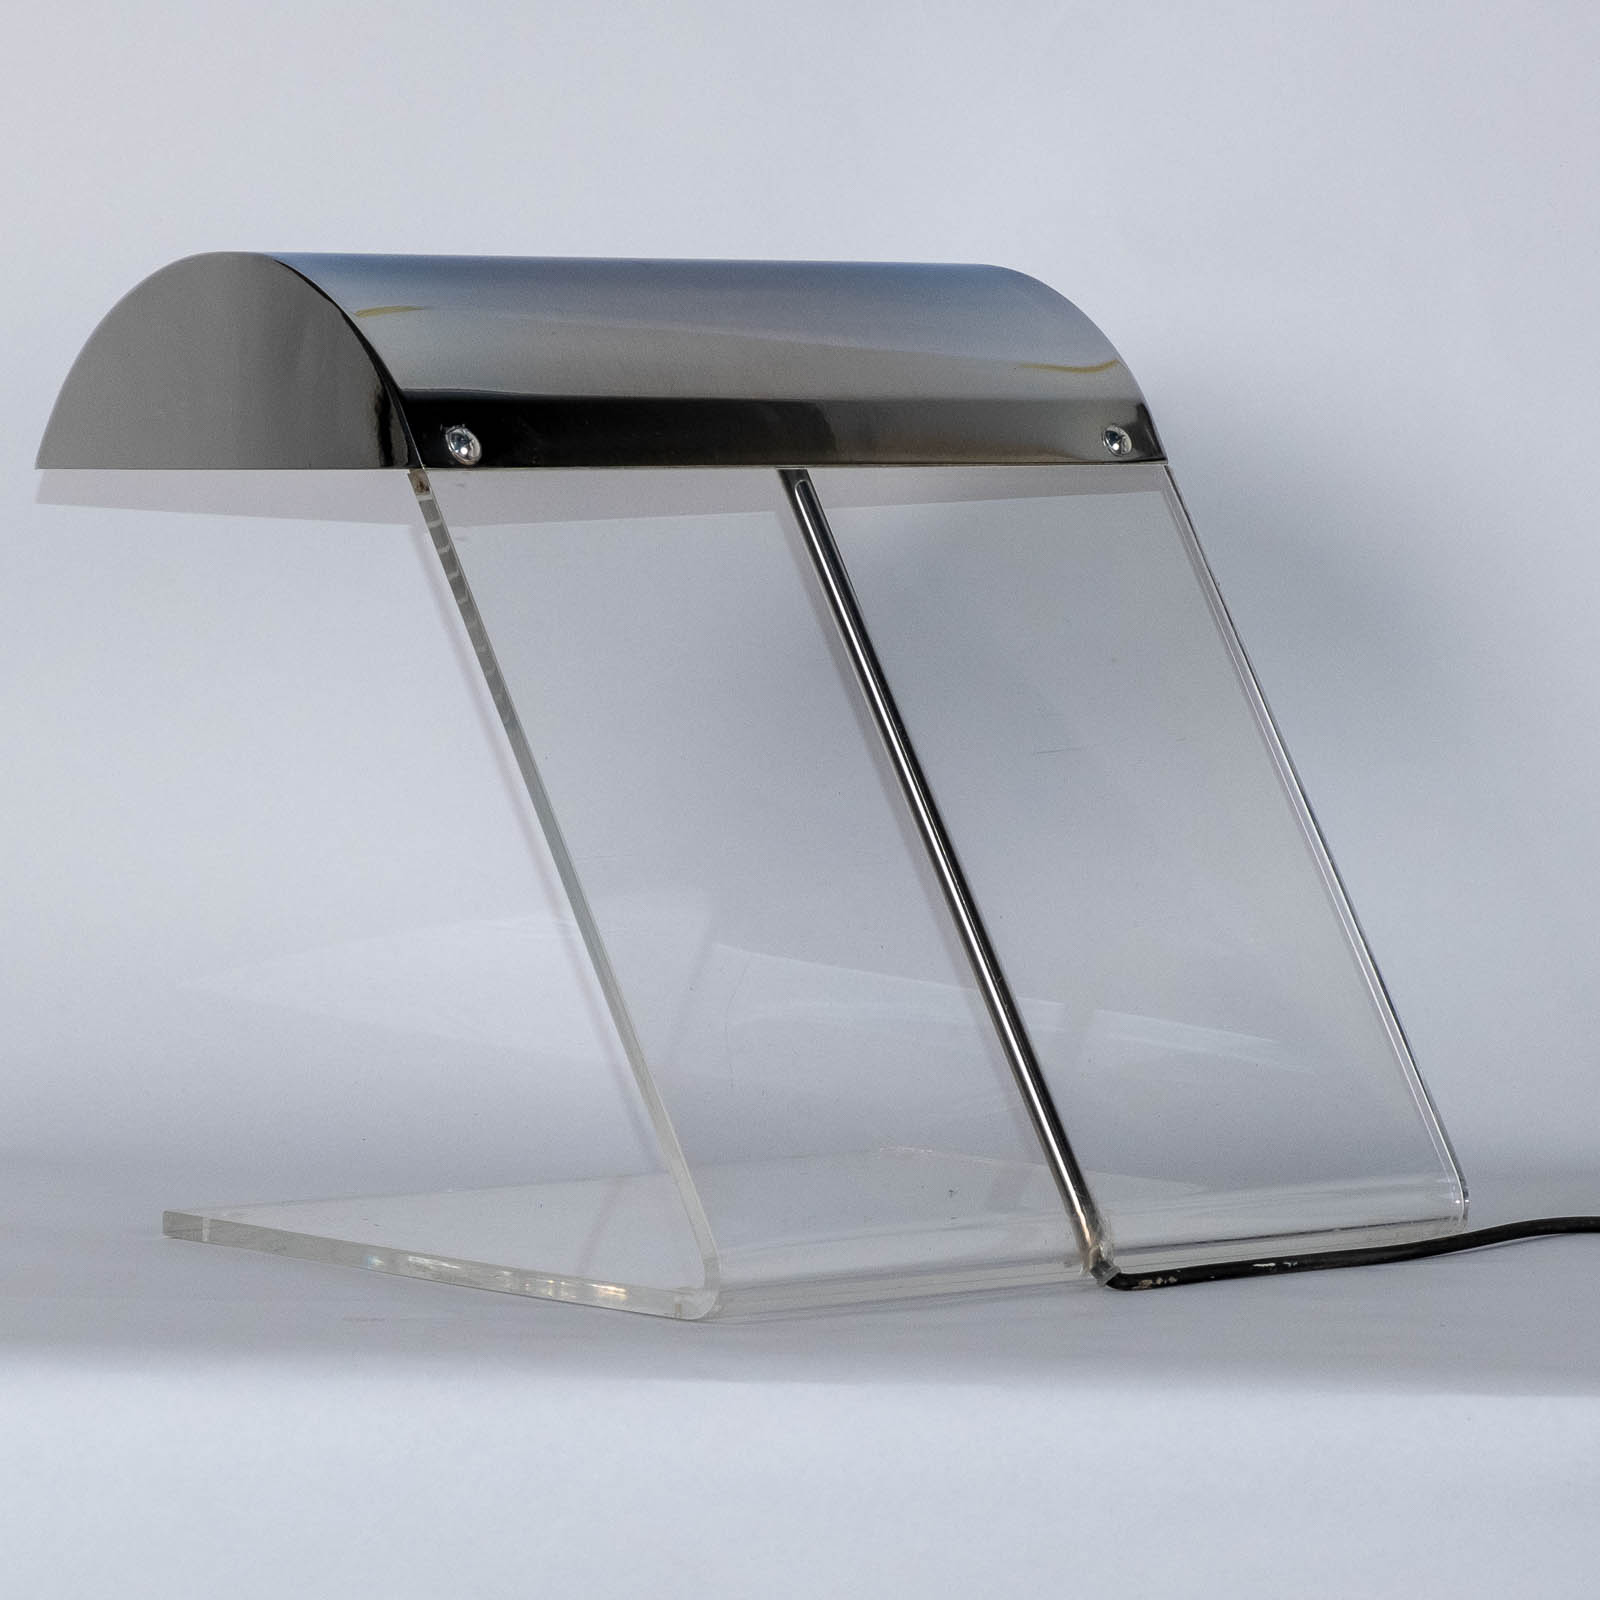 Perspex And Chrome Desk Lamp 1980s, Netherlands 00005